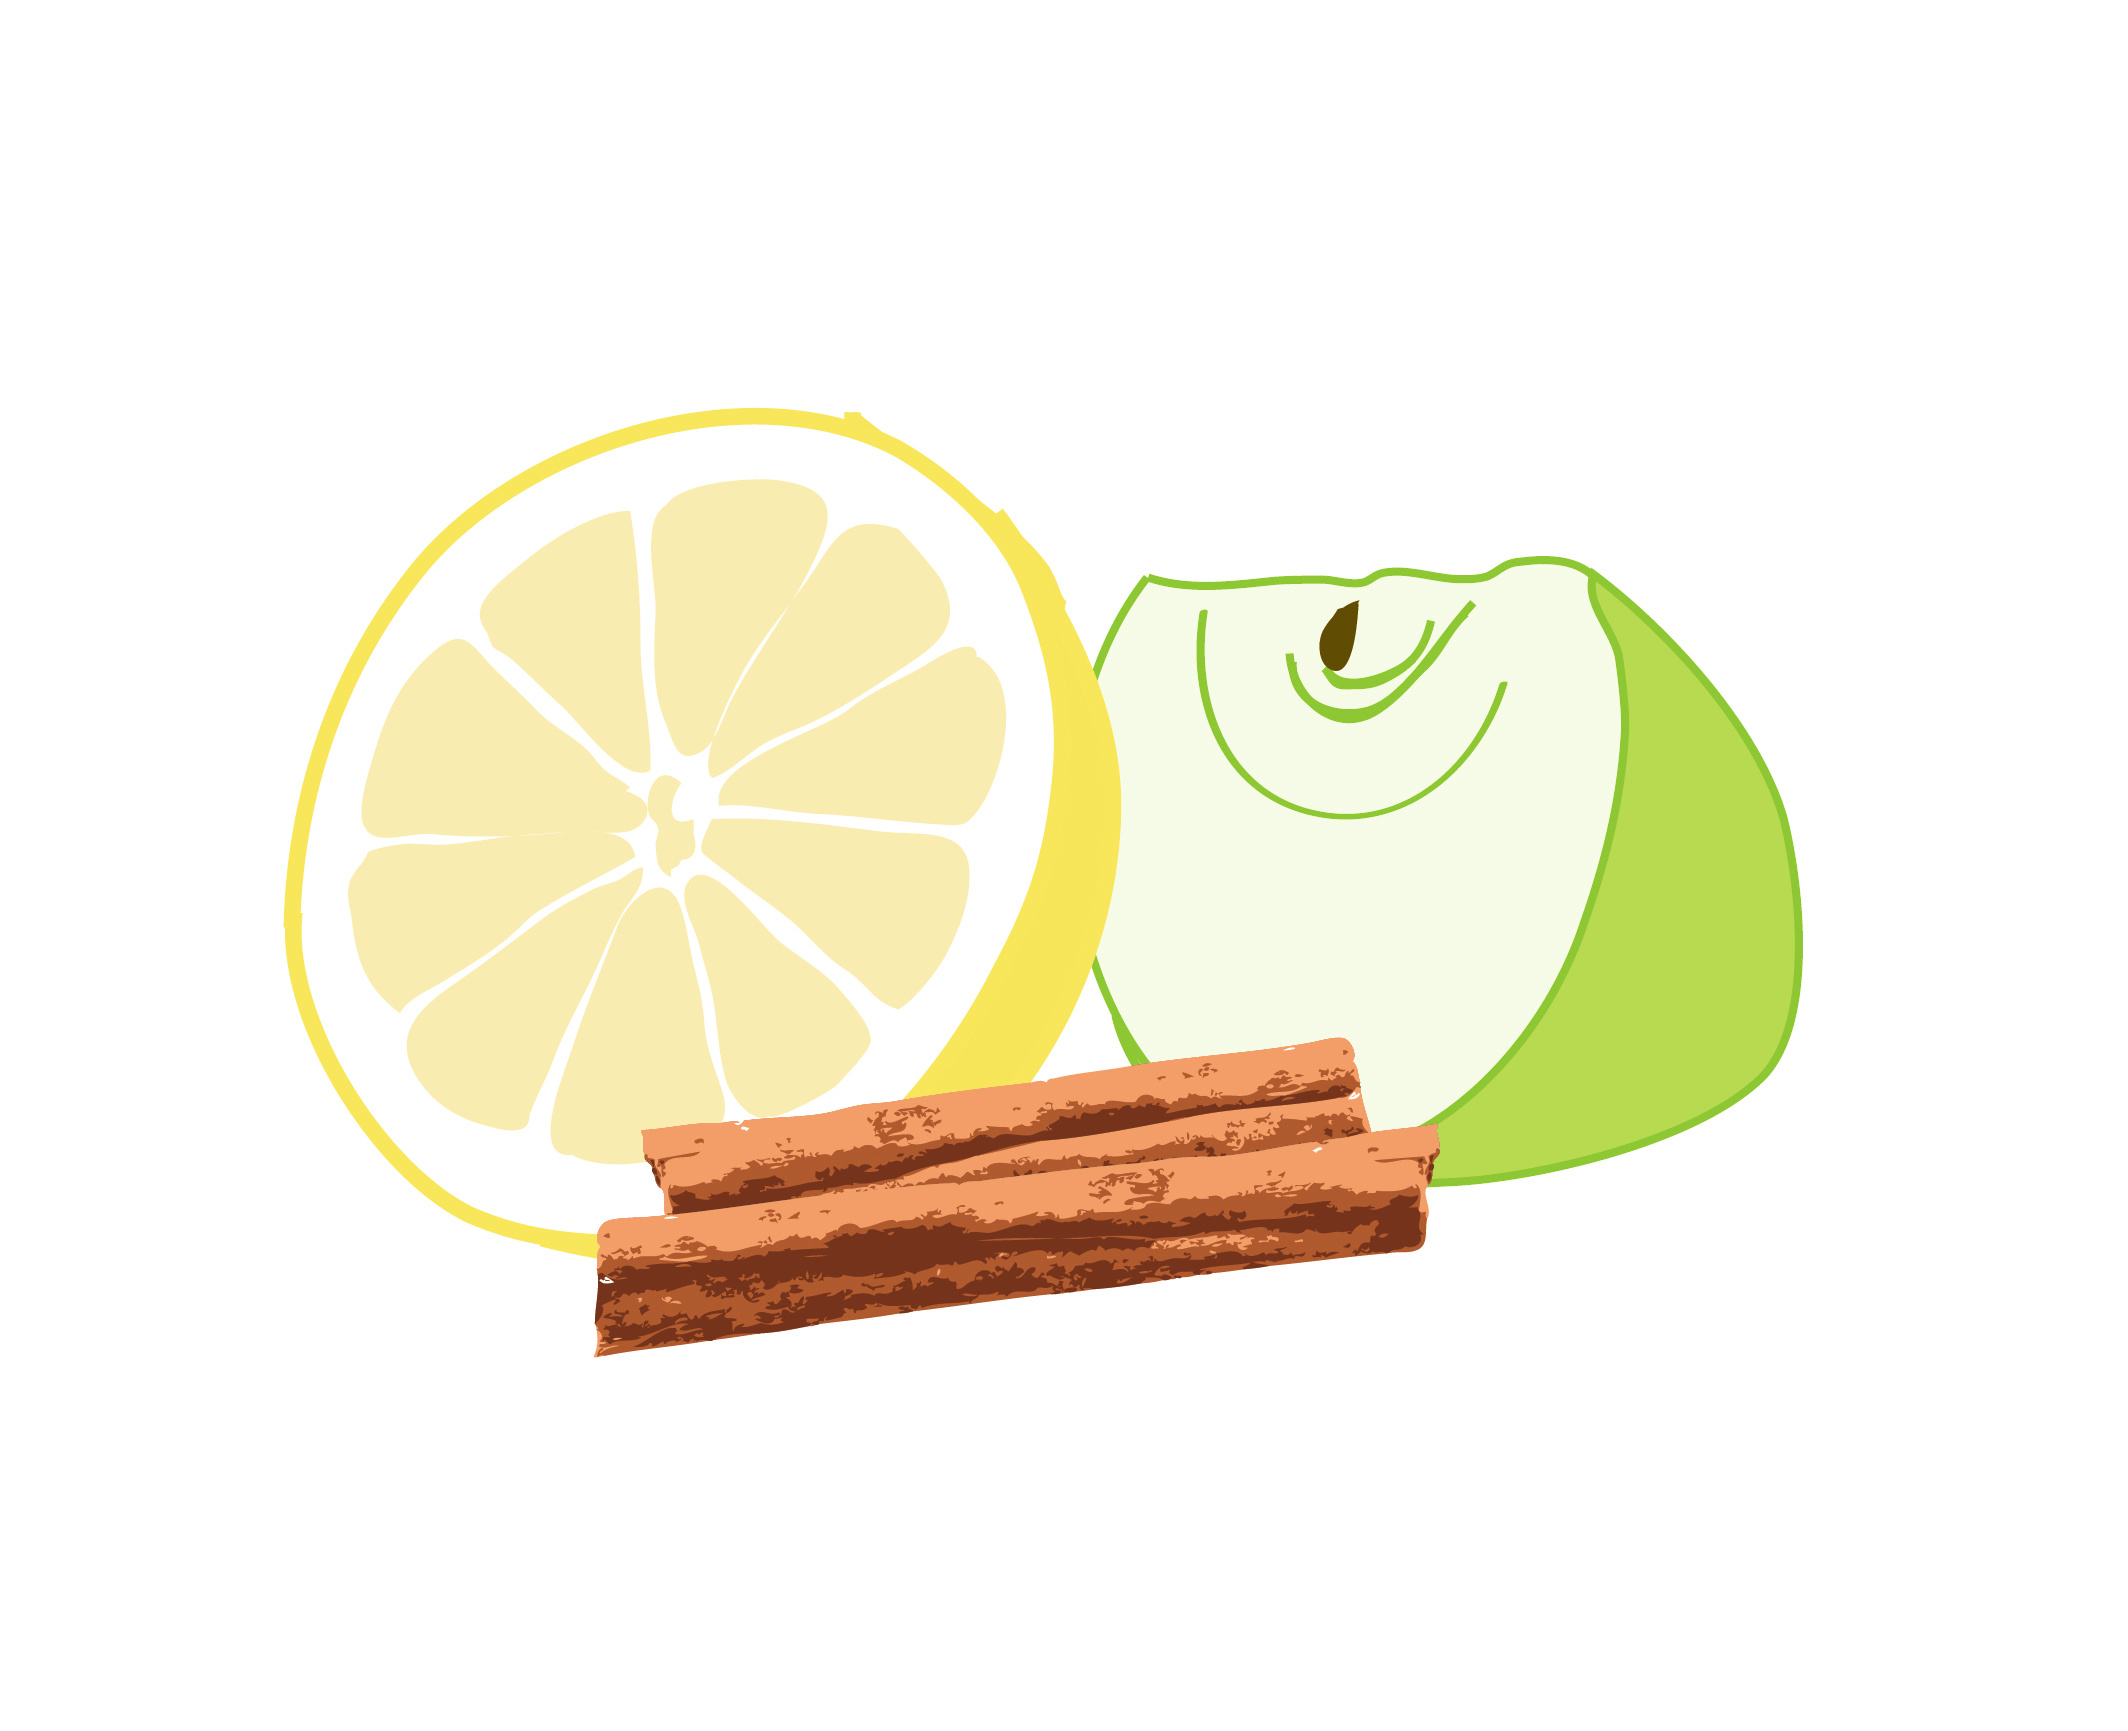 kanel_apple_citron